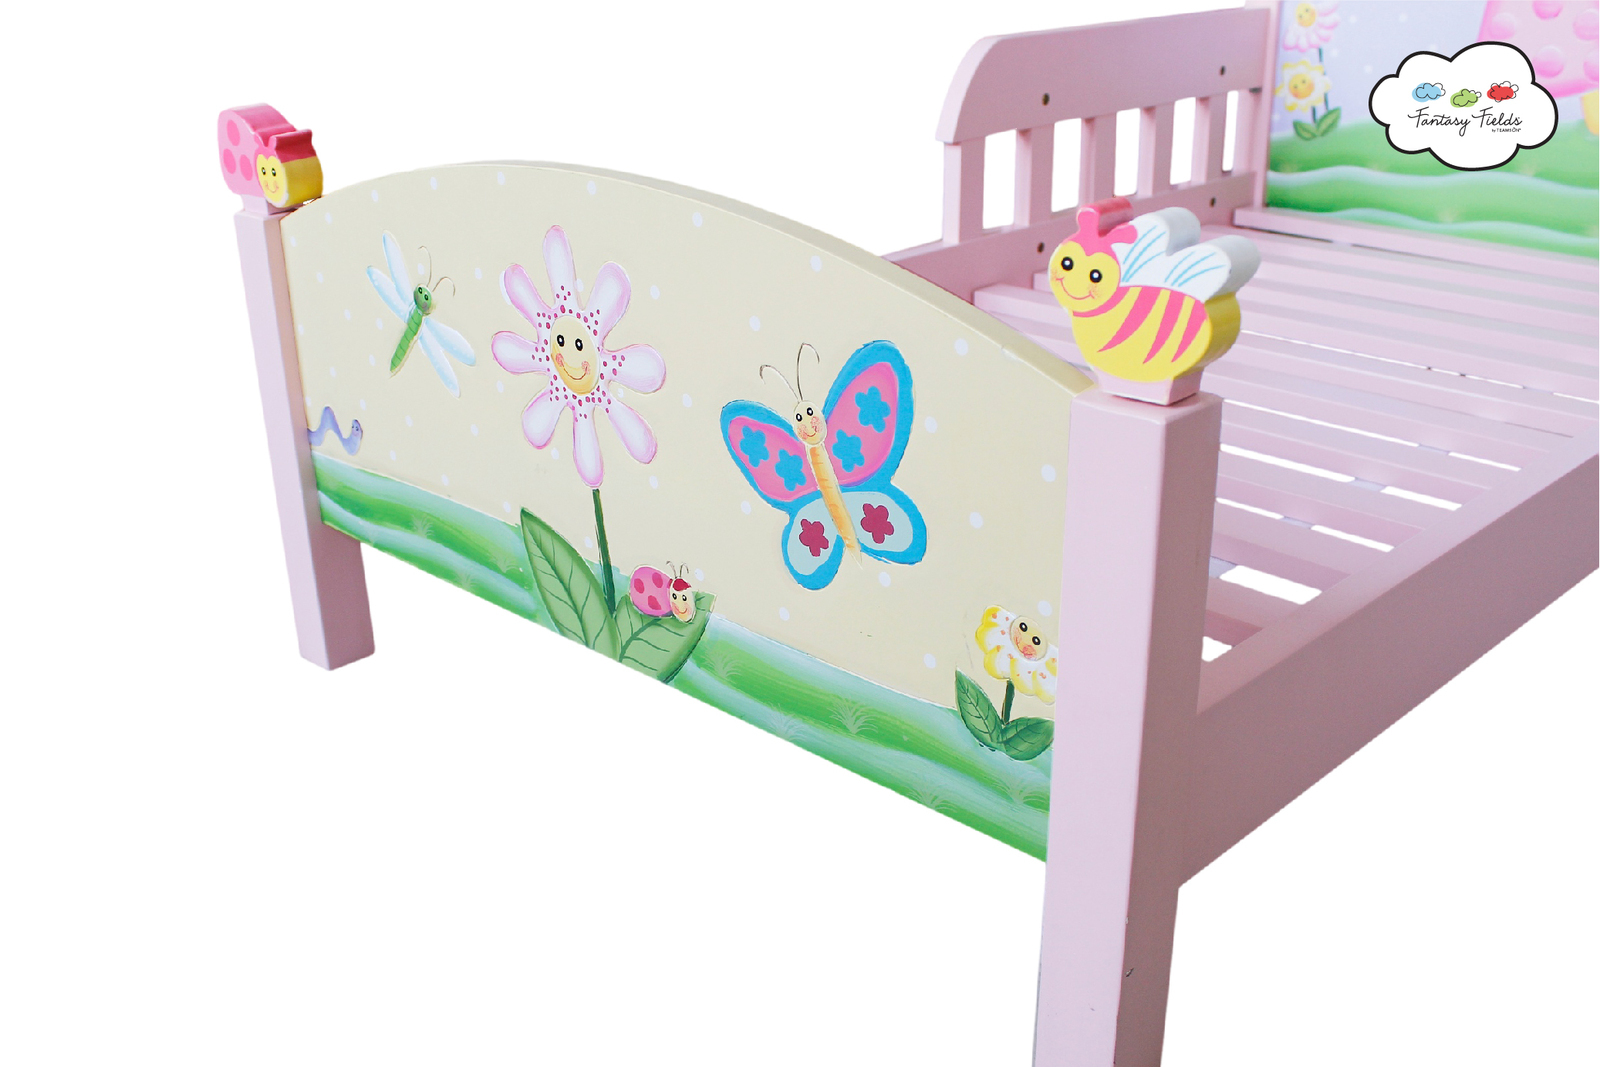 Fantasy fields magic garden toddler bed afterpay for Bedroom furniture afterpay